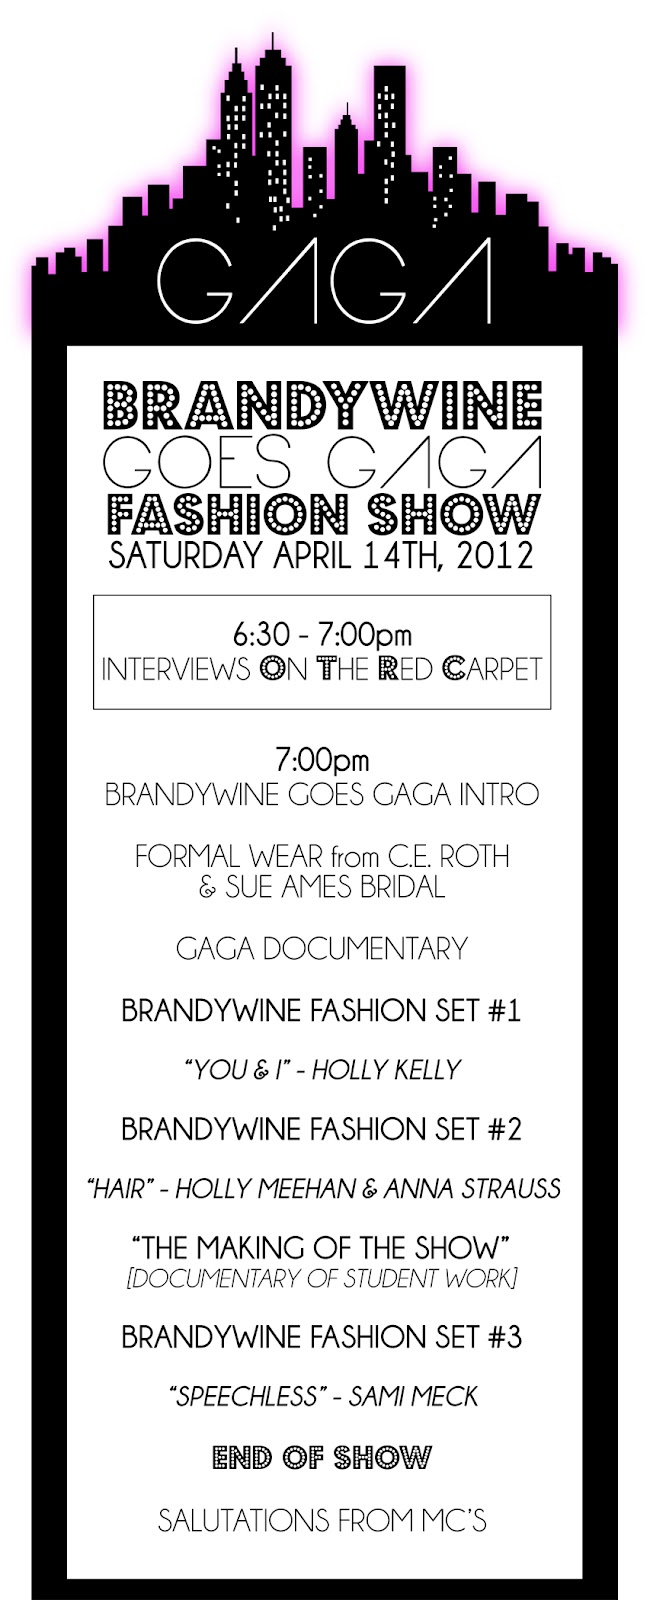 brandywine heights high school art club  brandywine goes gaga fashion show